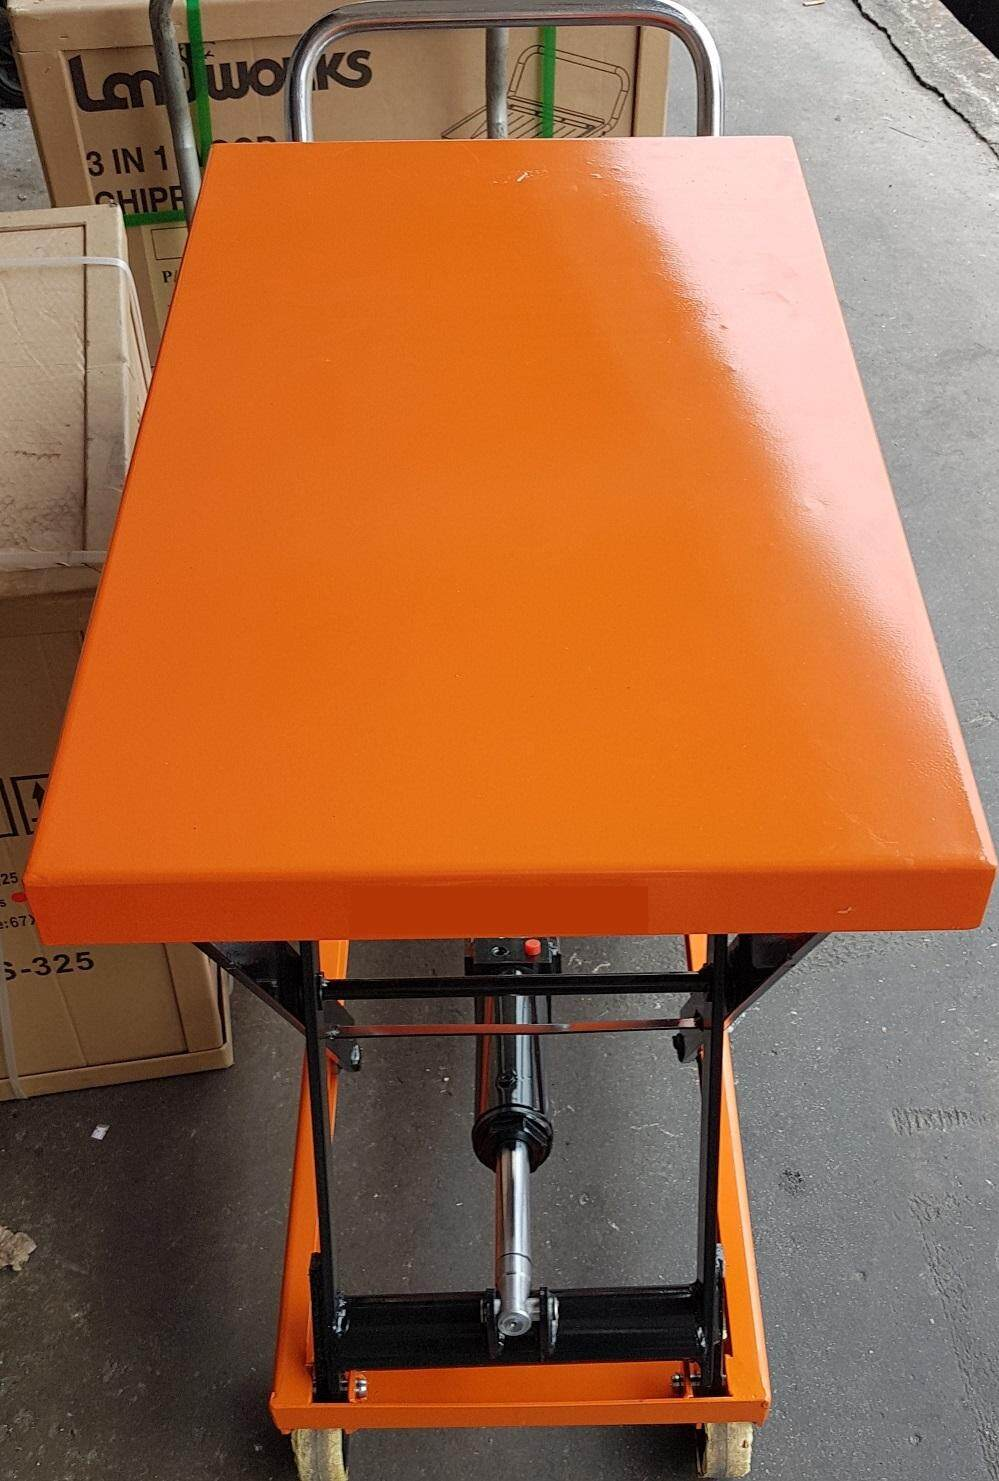 350 kg 1 year warranty 1300 mm height table jack lift lifter lifting hydraulic oil pump level top portable wheel roller roll tire handle heavy trolley car up truck push high tall pull scissor top fold driver extend rise transport steer carrier carry load